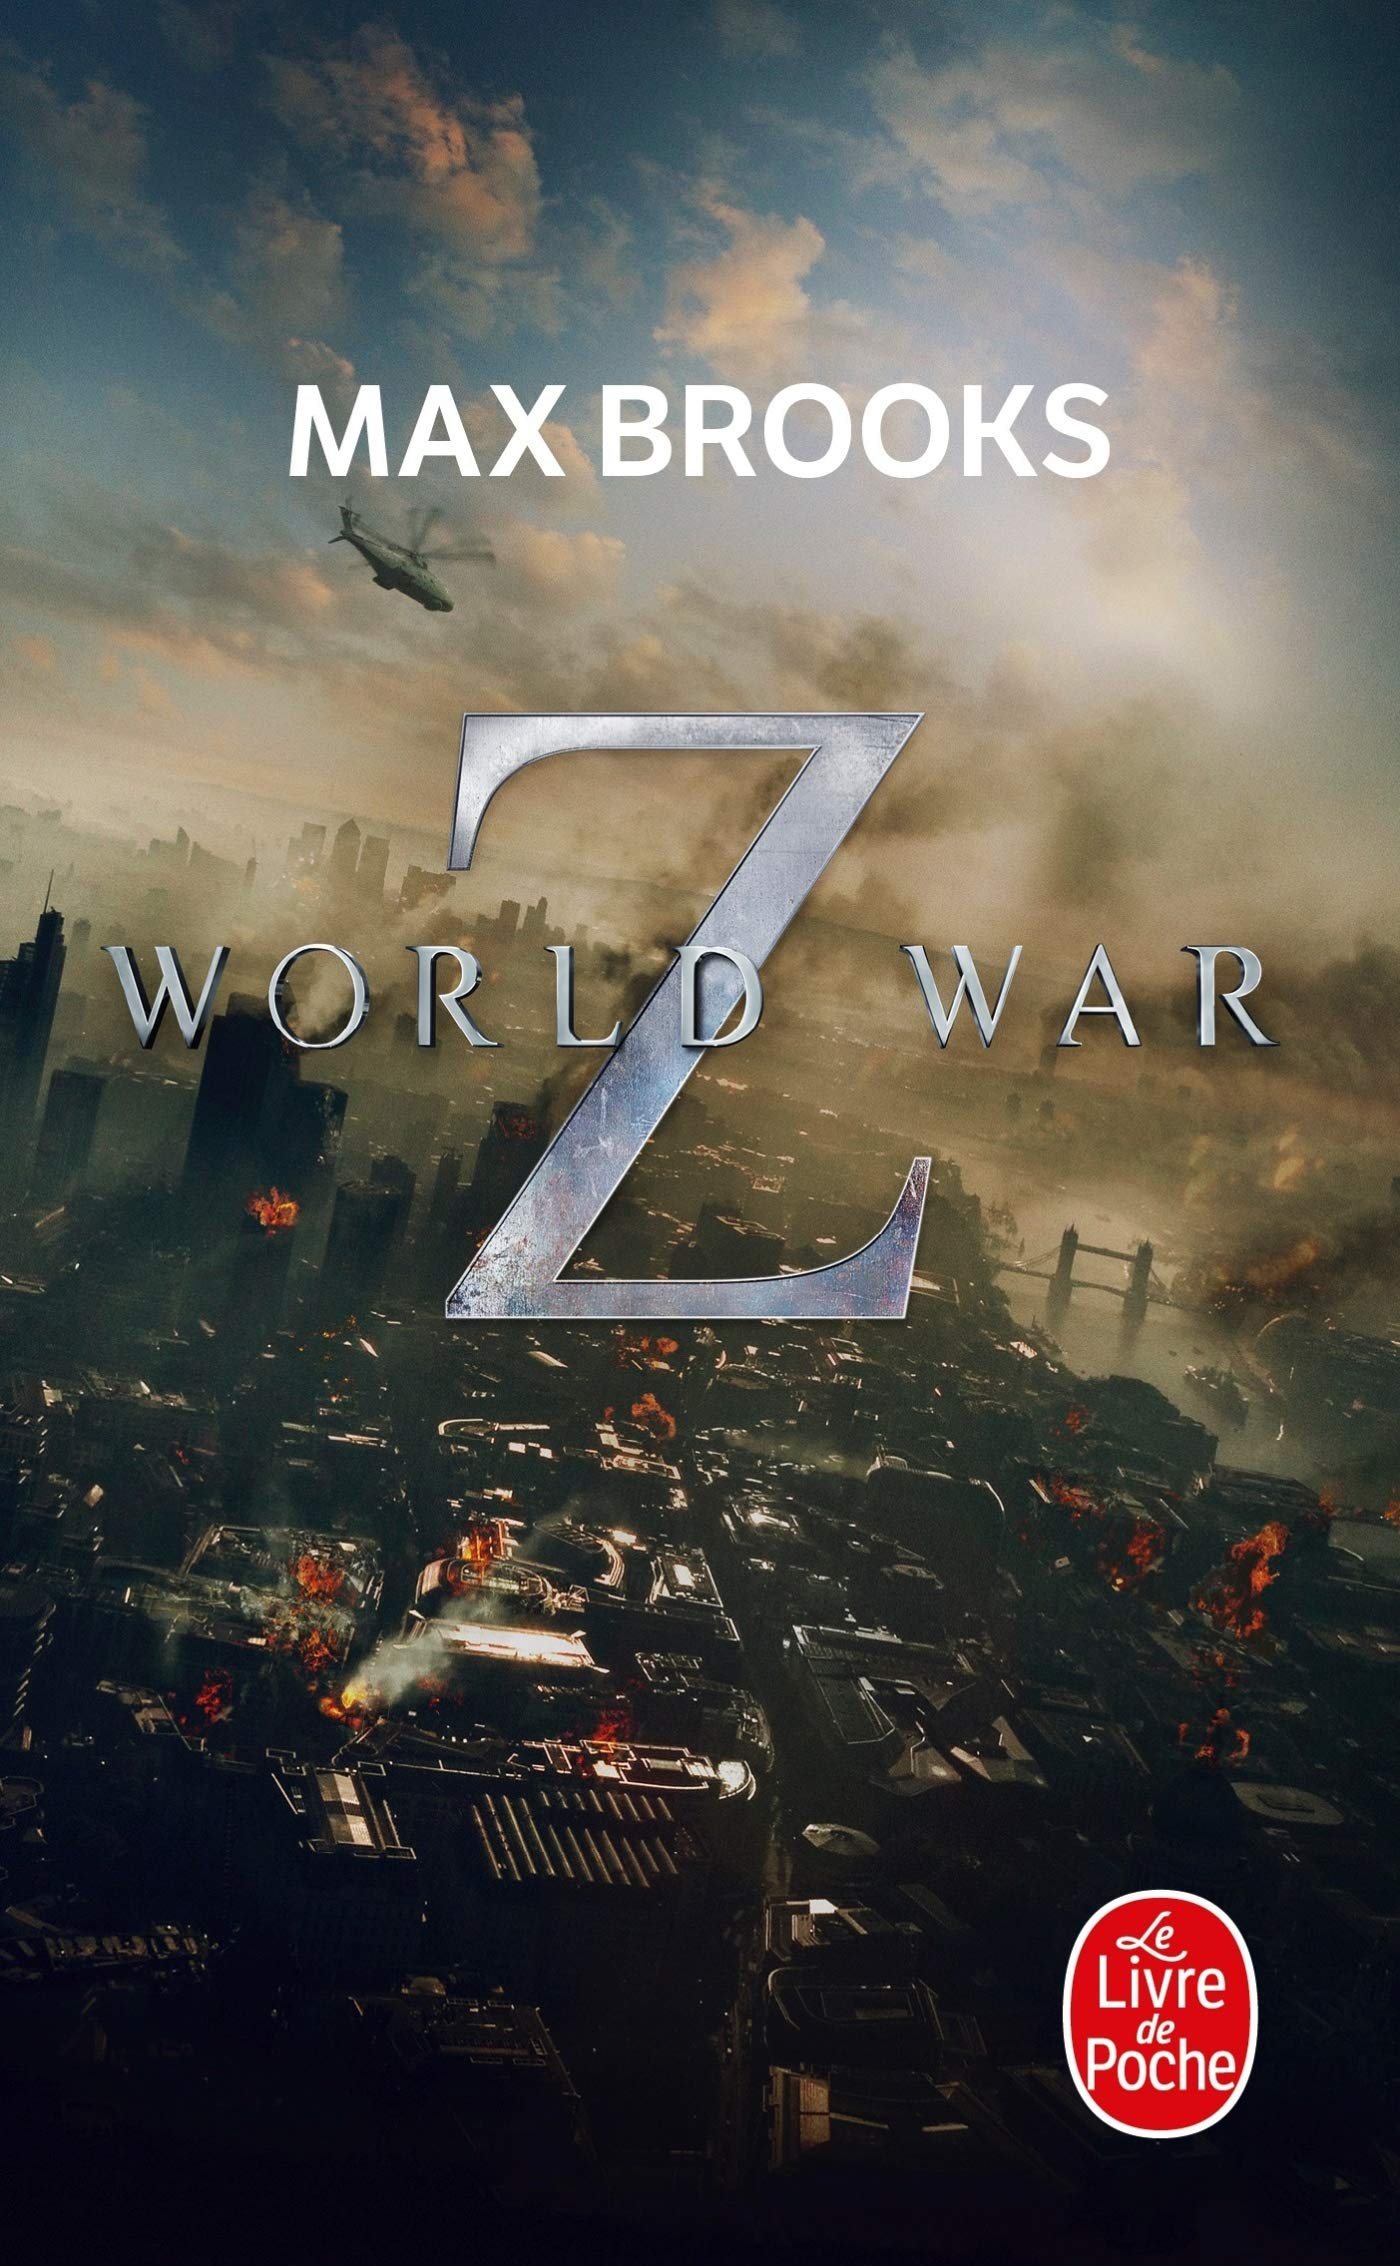 Lecture : World War Z (Max Brooks)